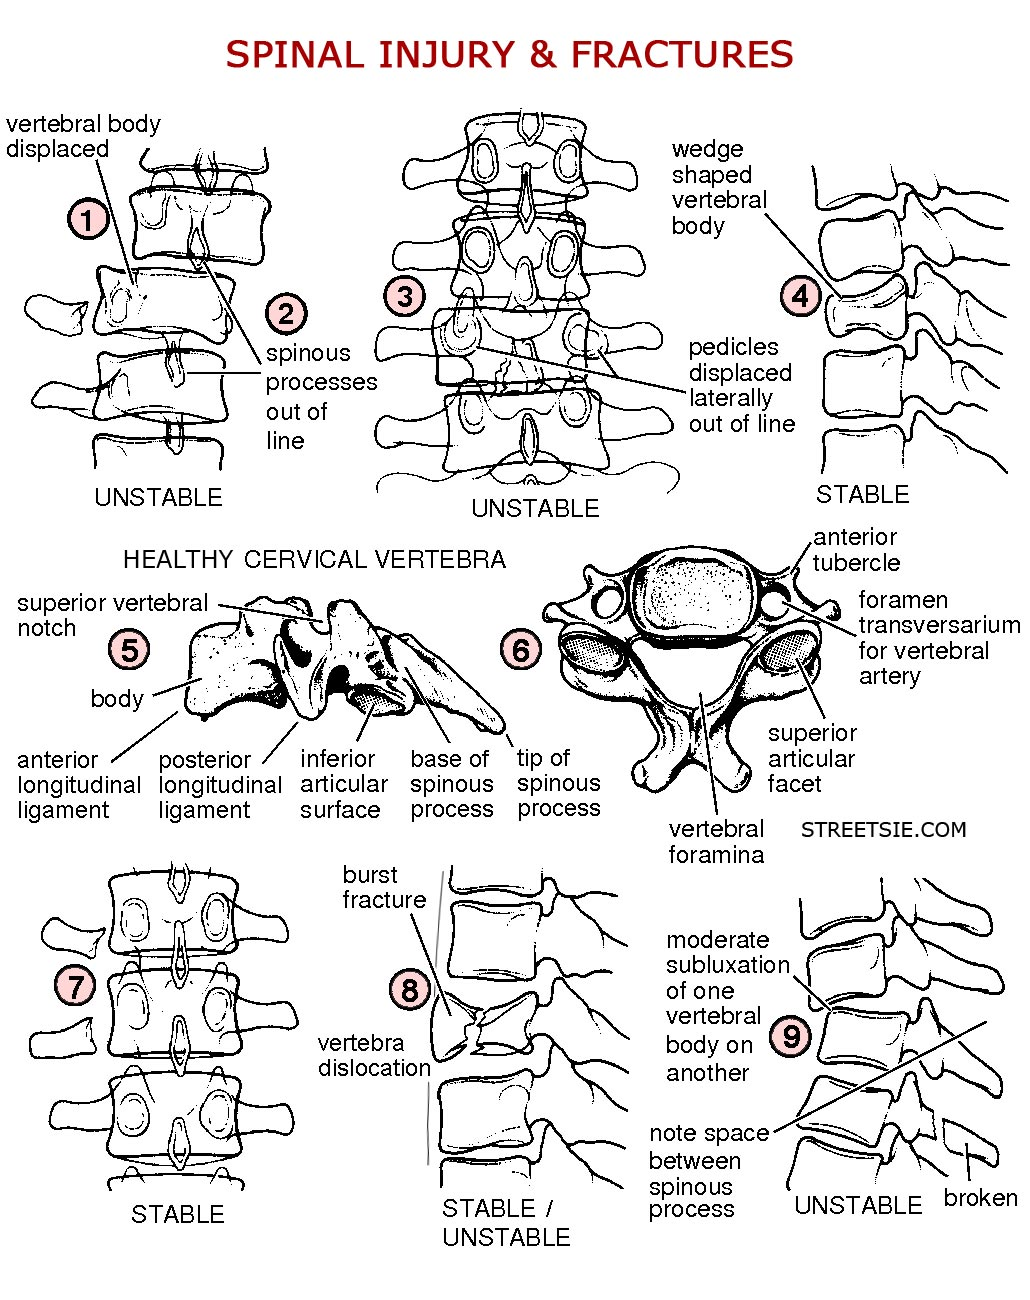 Spinal Cord Injury Radiology X-rays CT and MRI Scans